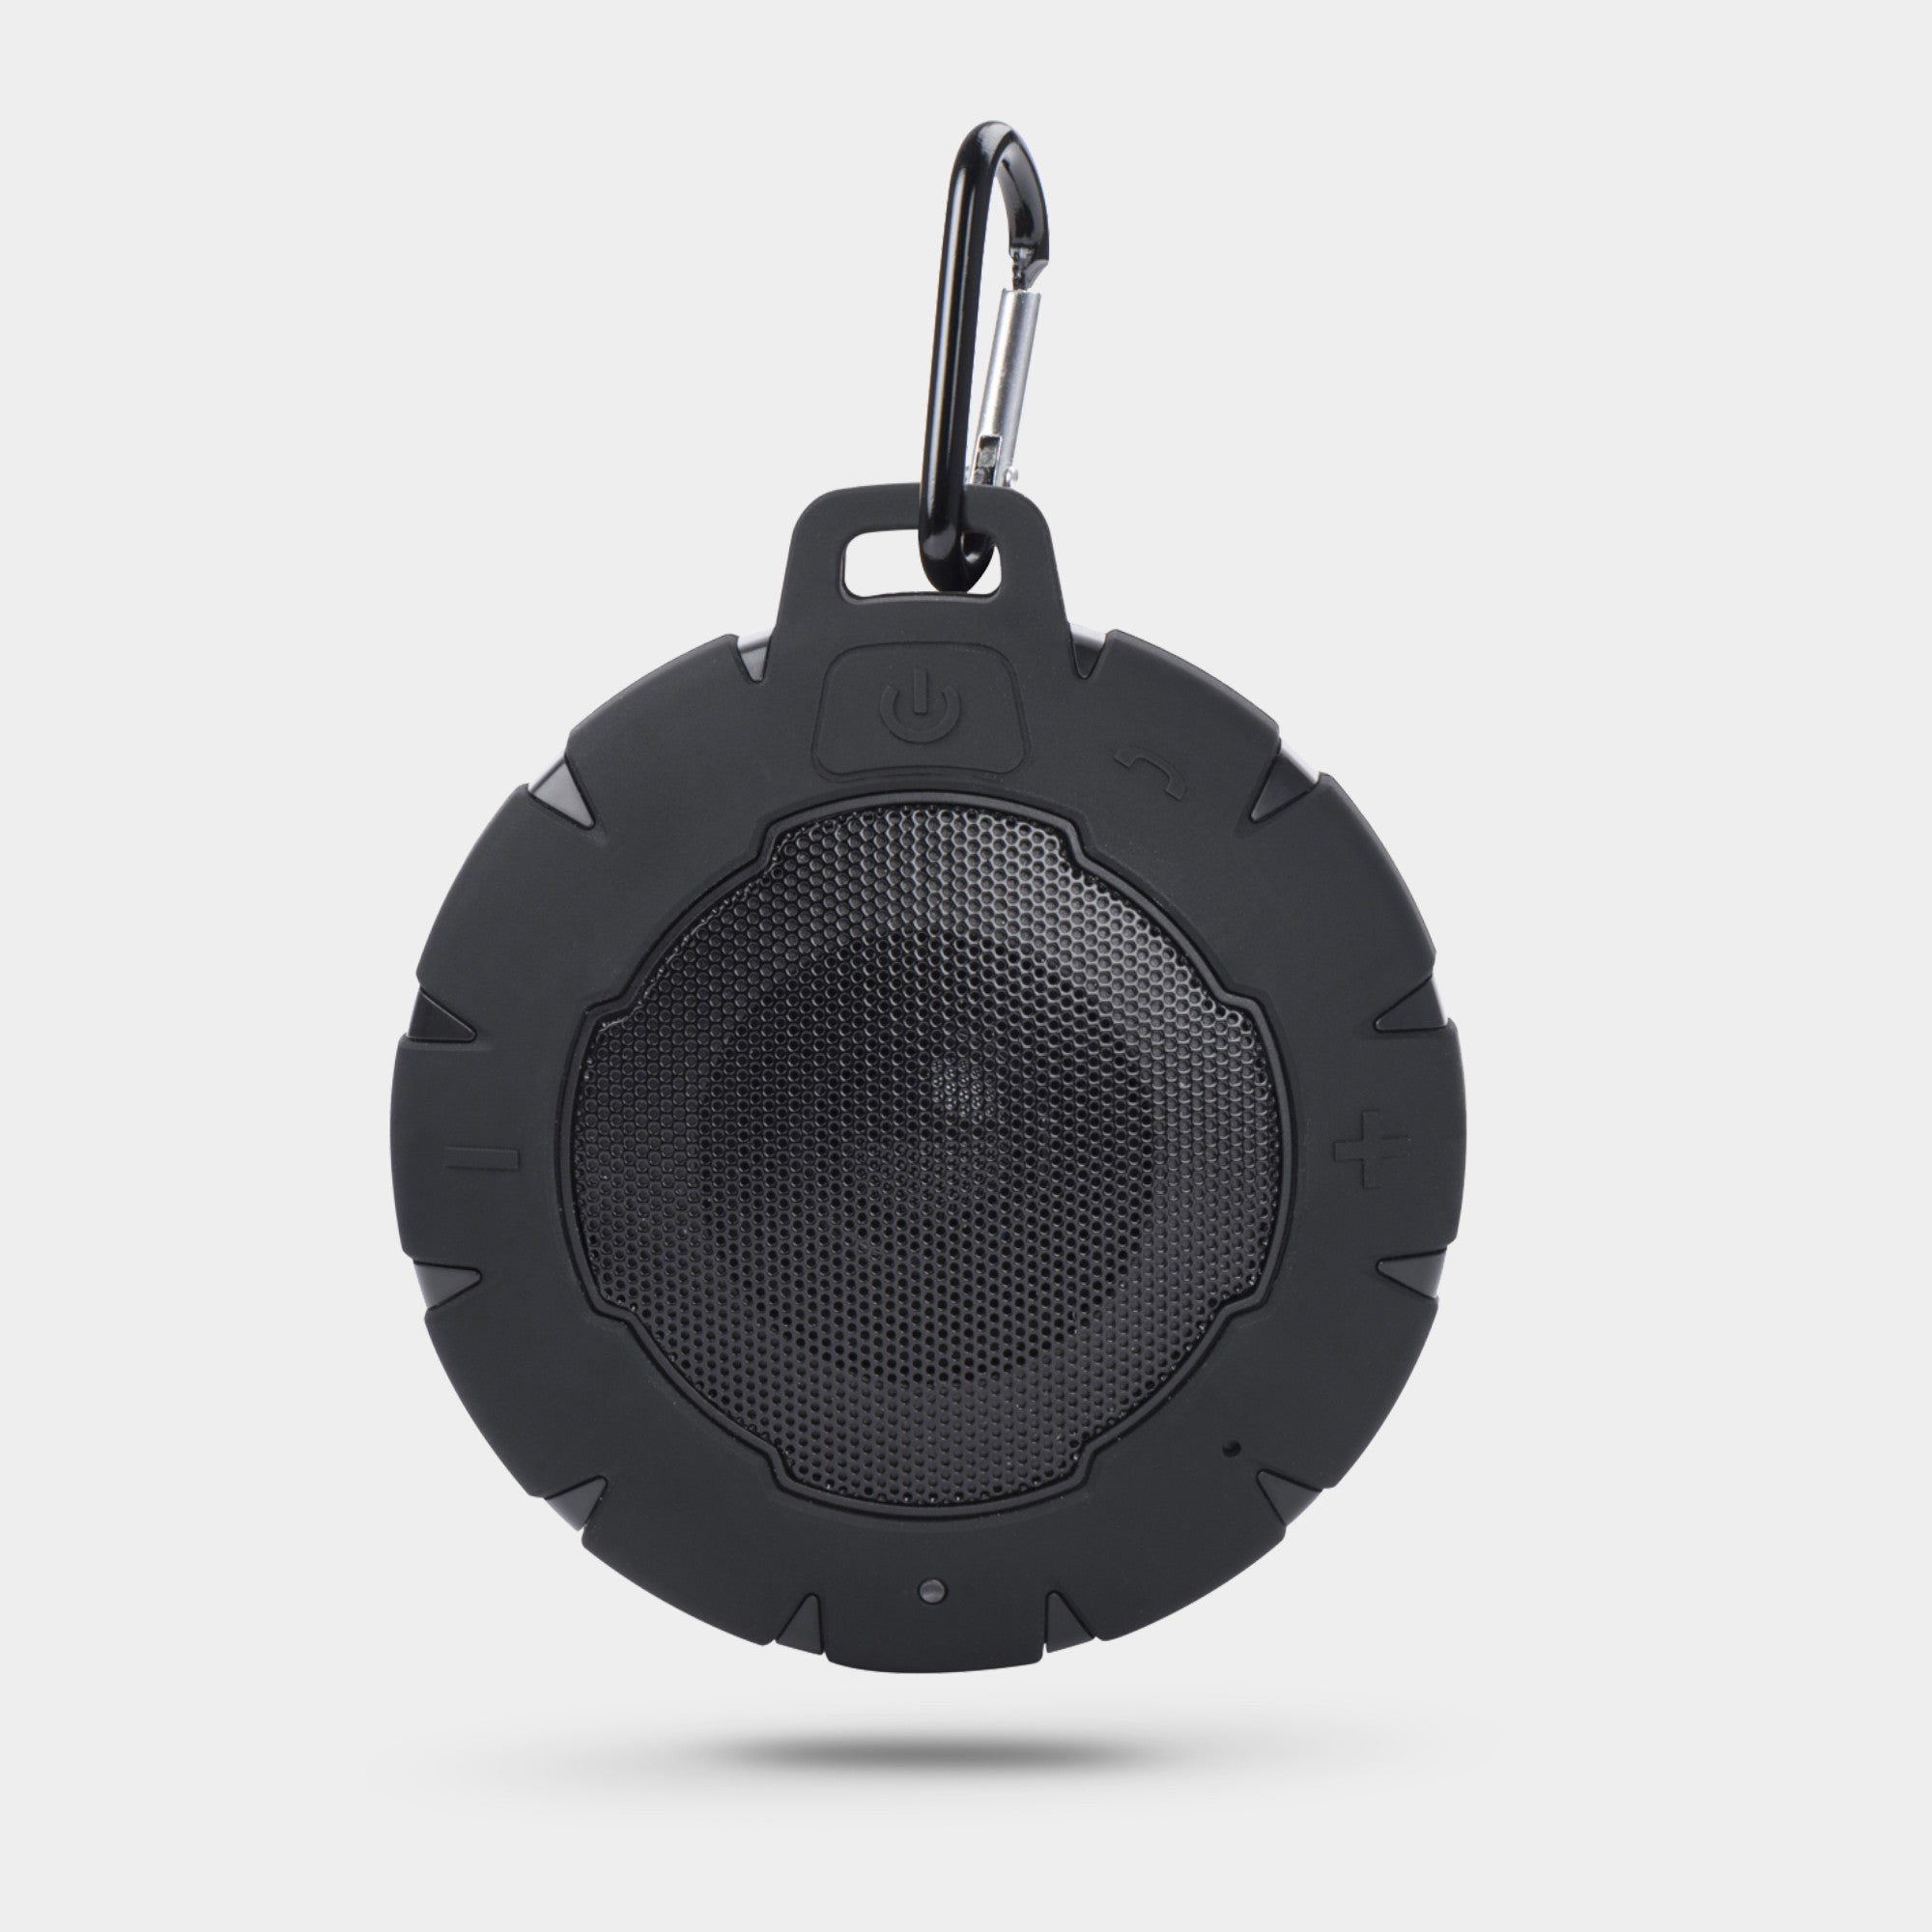 NUSOUND WAVE RIDER Waterproof IPX7 Speaker (Black)